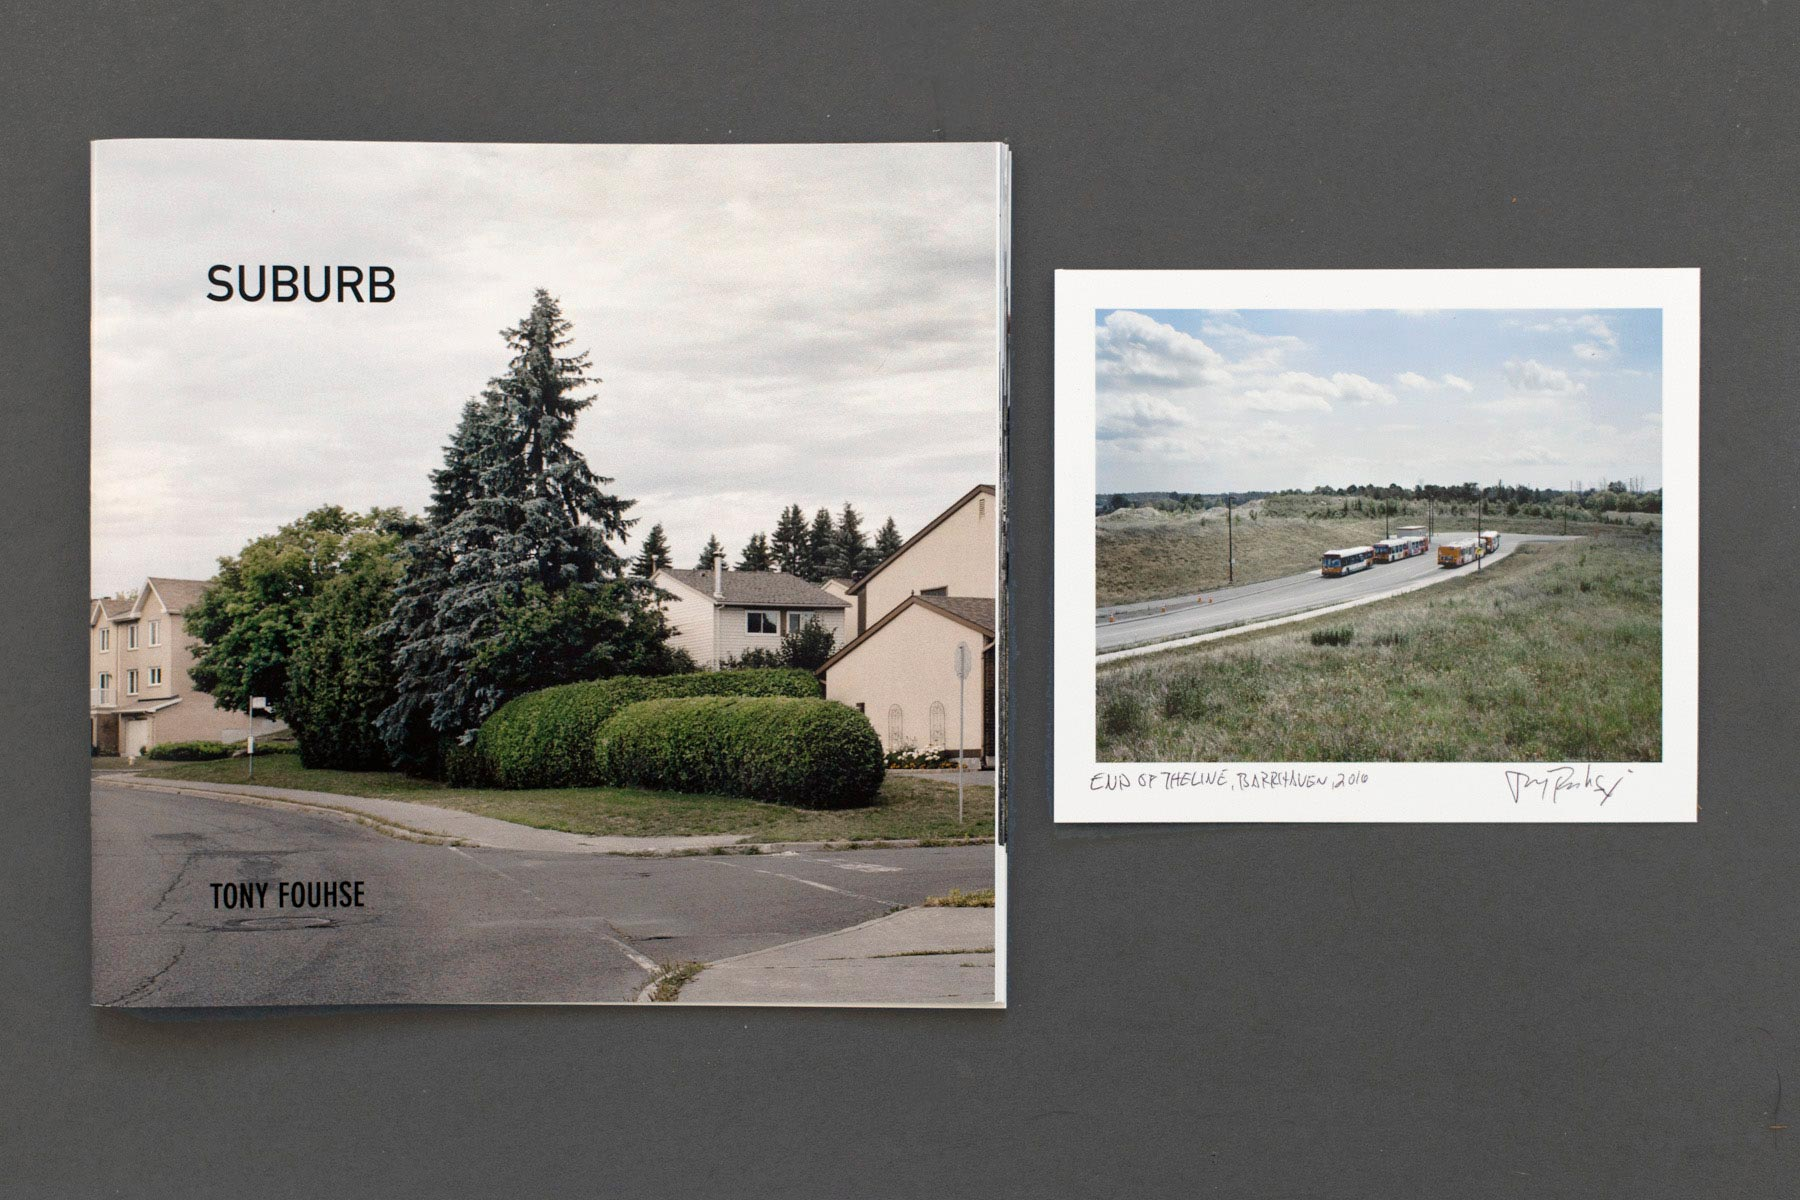 SUBURB-product-002-2